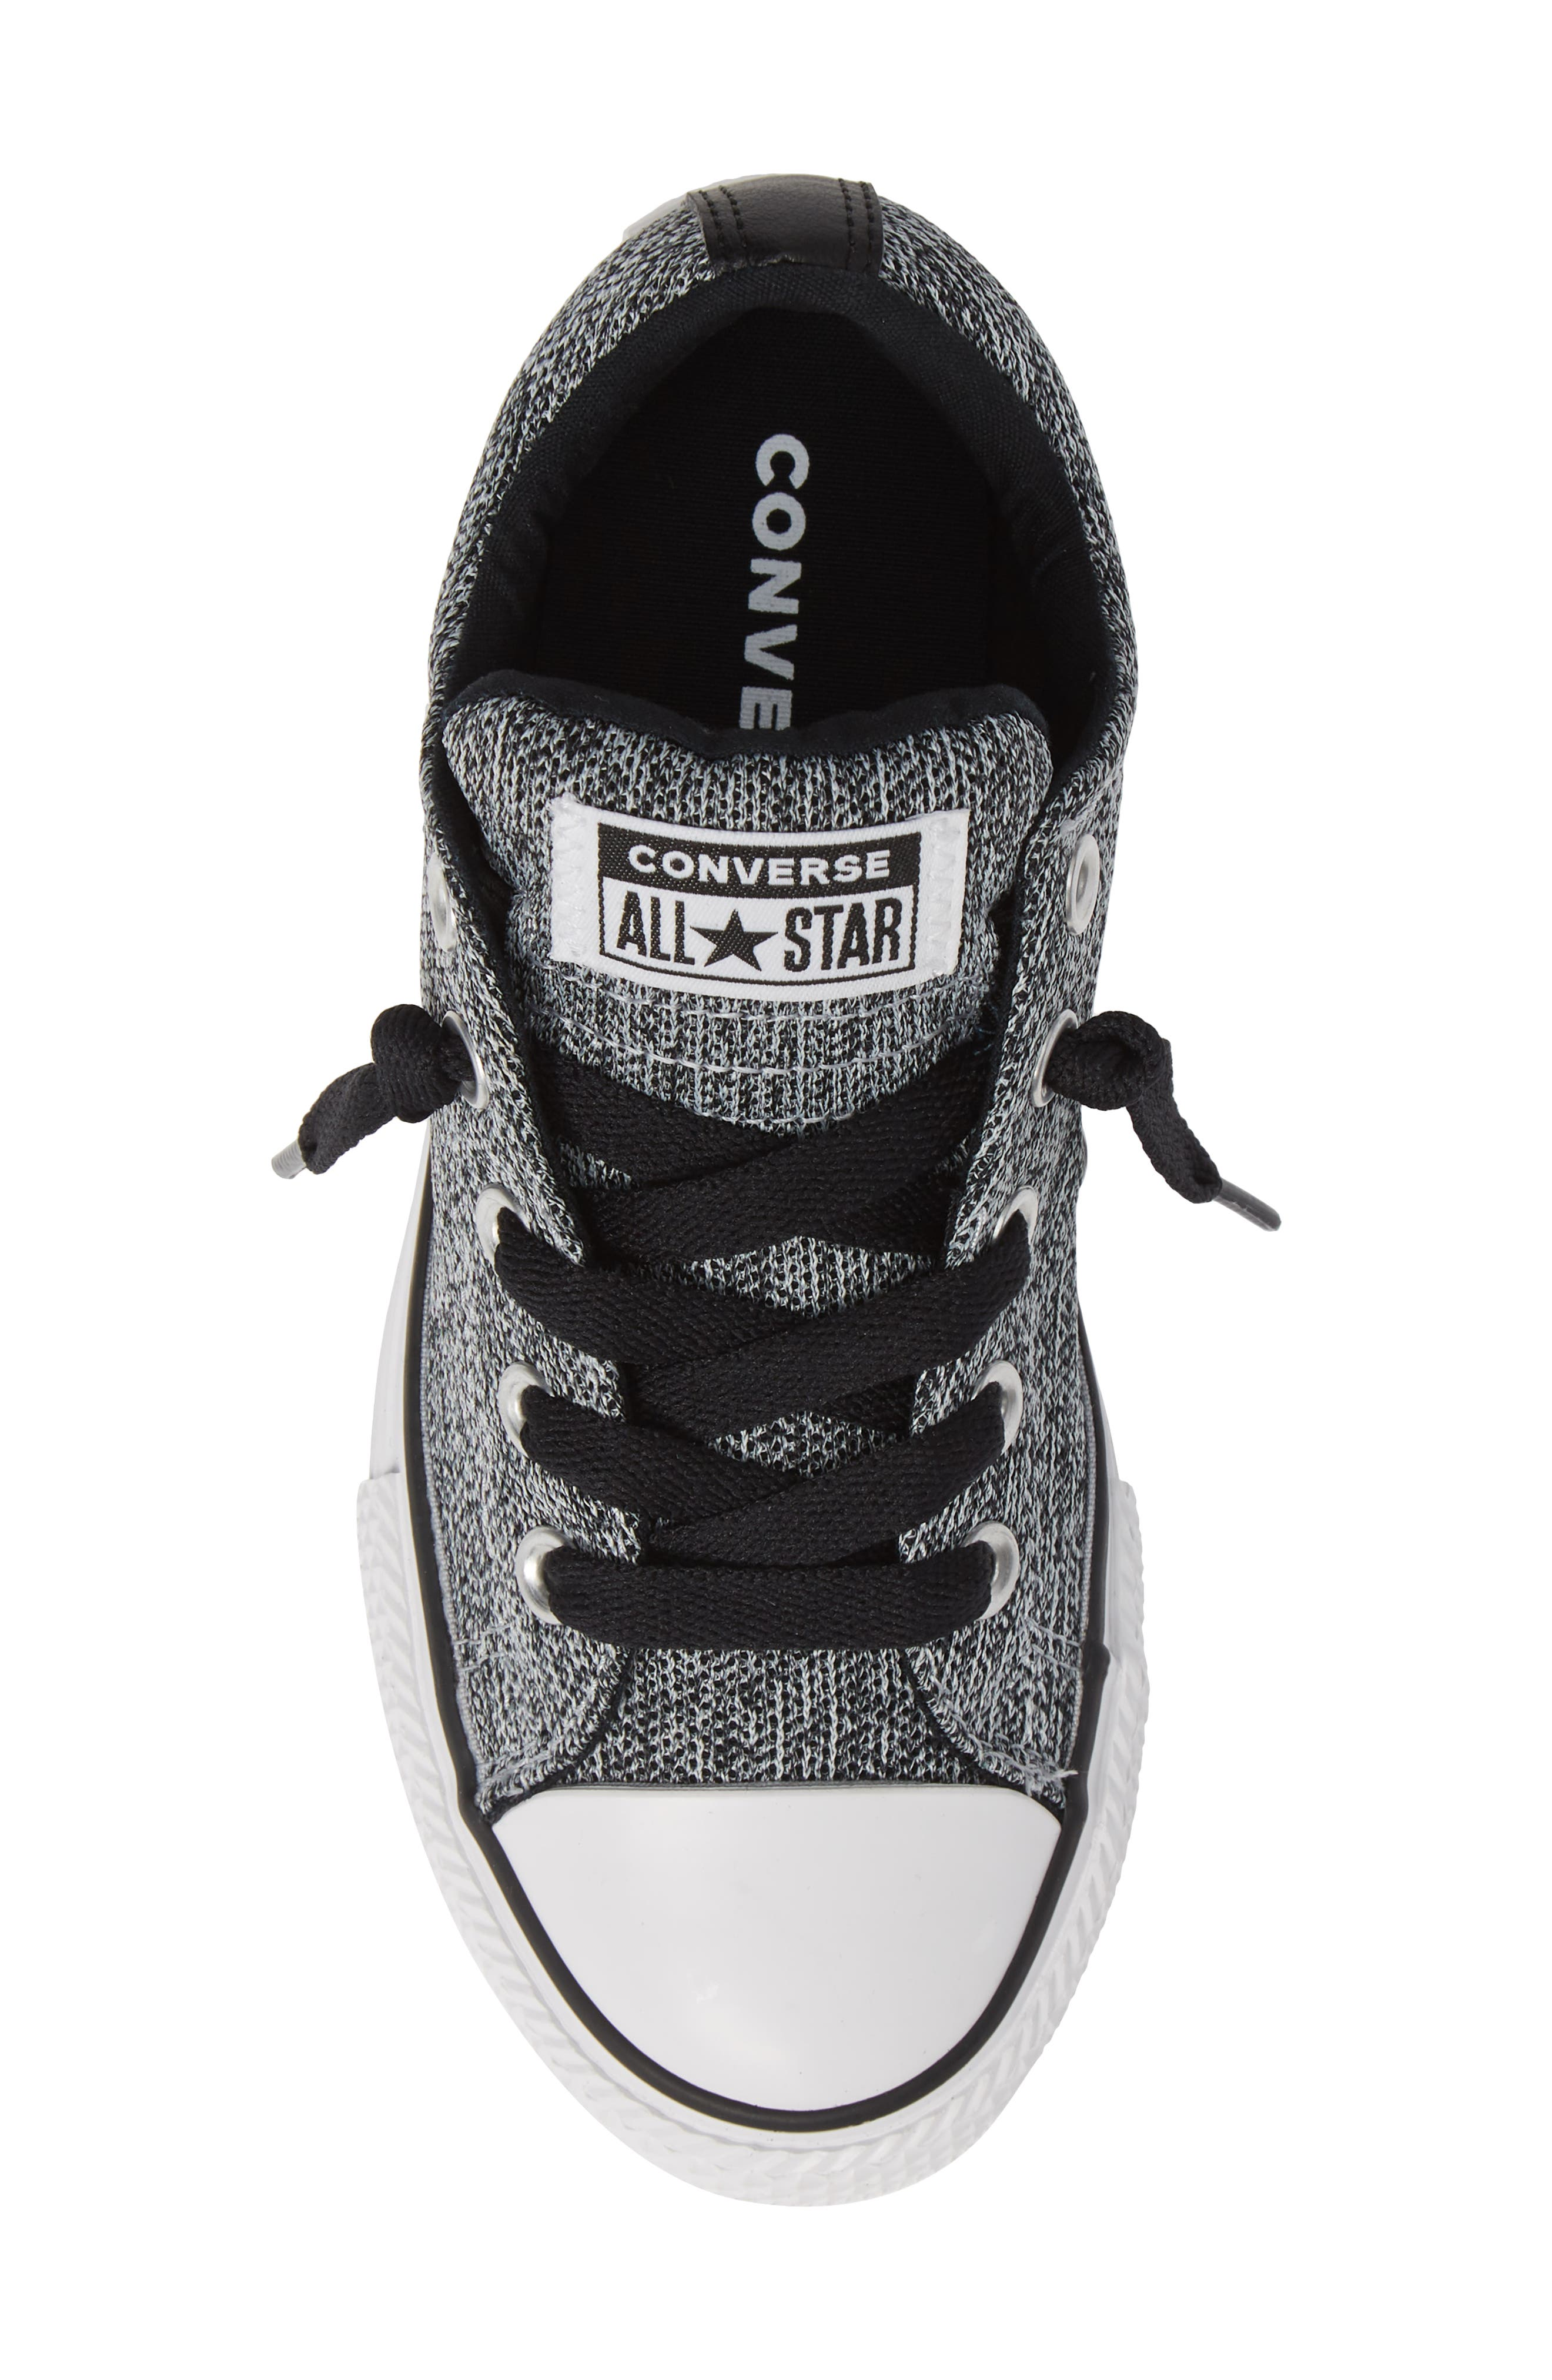 CONVERSE, All Star<sup>®</sup> Graphite Textured Street Low Top Sneaker, Alternate thumbnail 5, color, WOLF GREY